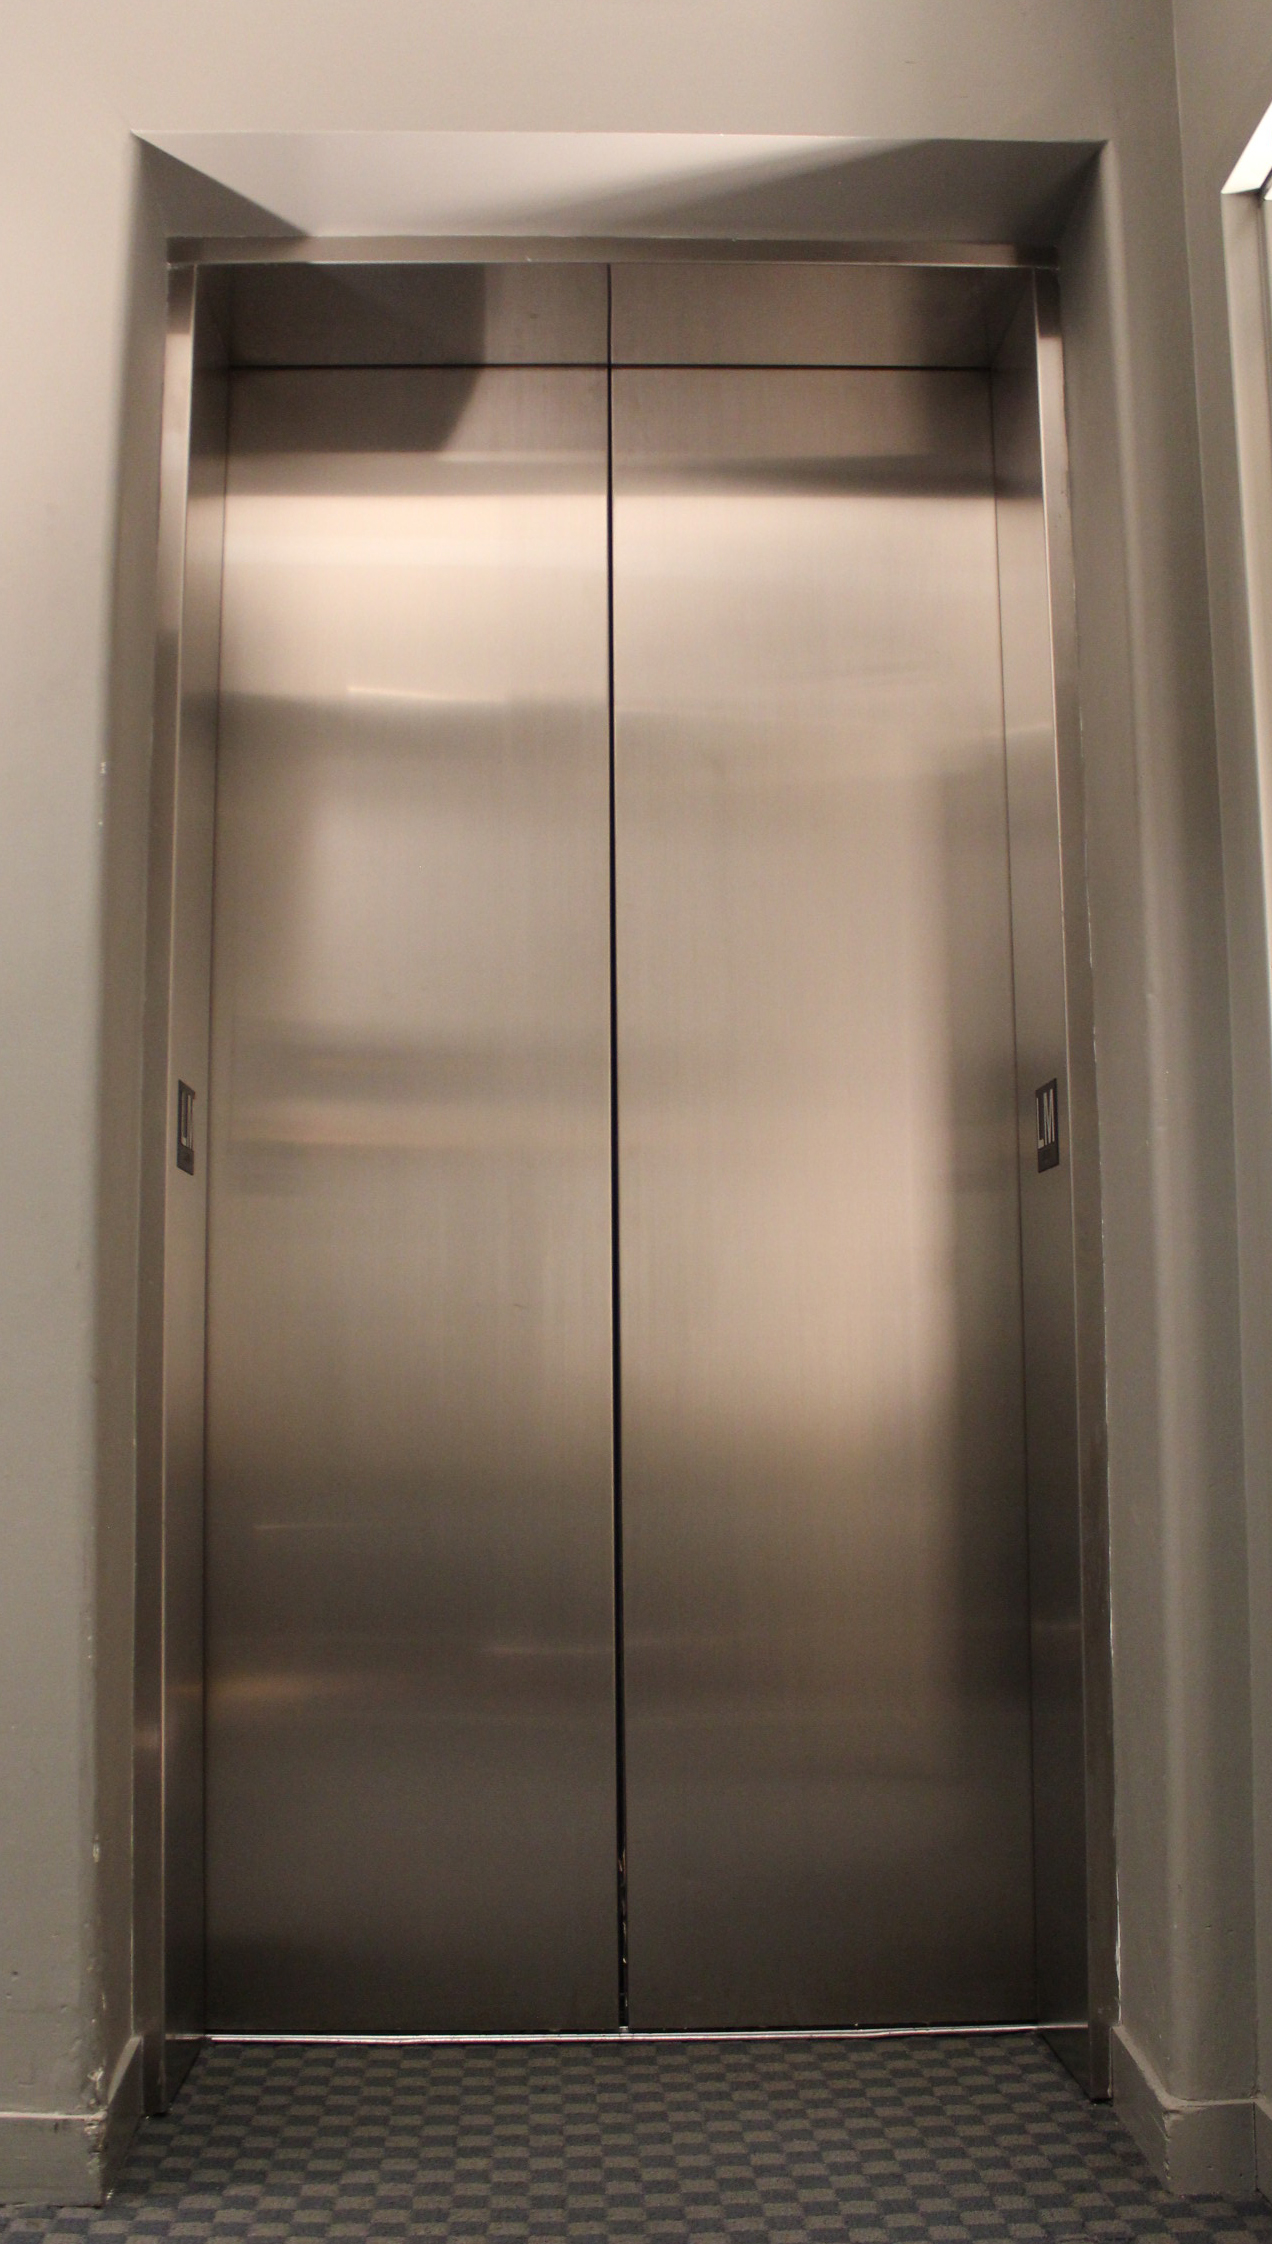 Stainless steel elevators photo